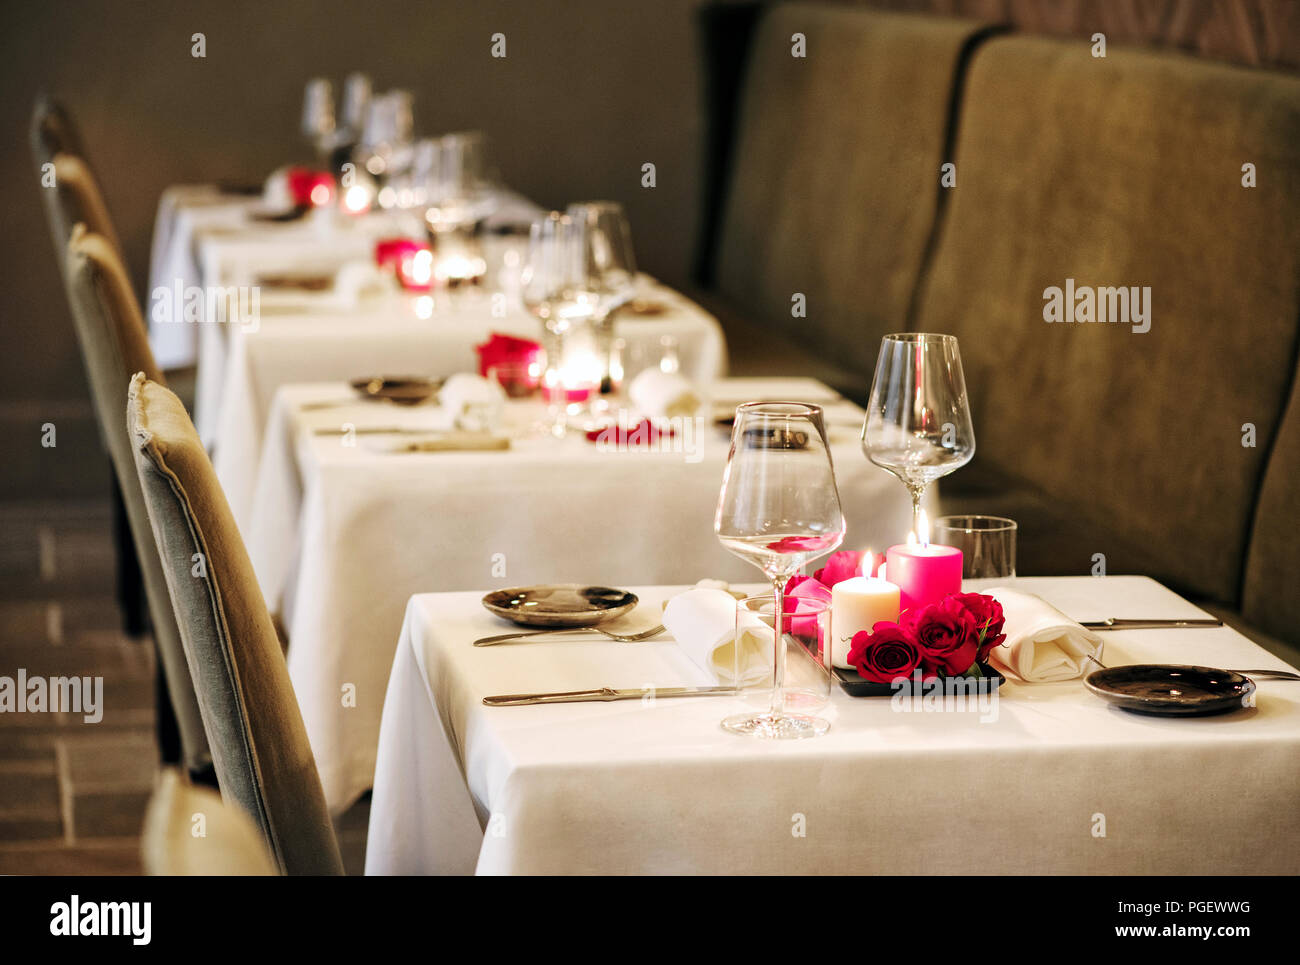 Romantic Table Settings In A Restaurant With Centrepieces Of Burning Candles And Red Roses And Elegant Glassware For An Intimate Dinner For Two Stock Photo Alamy